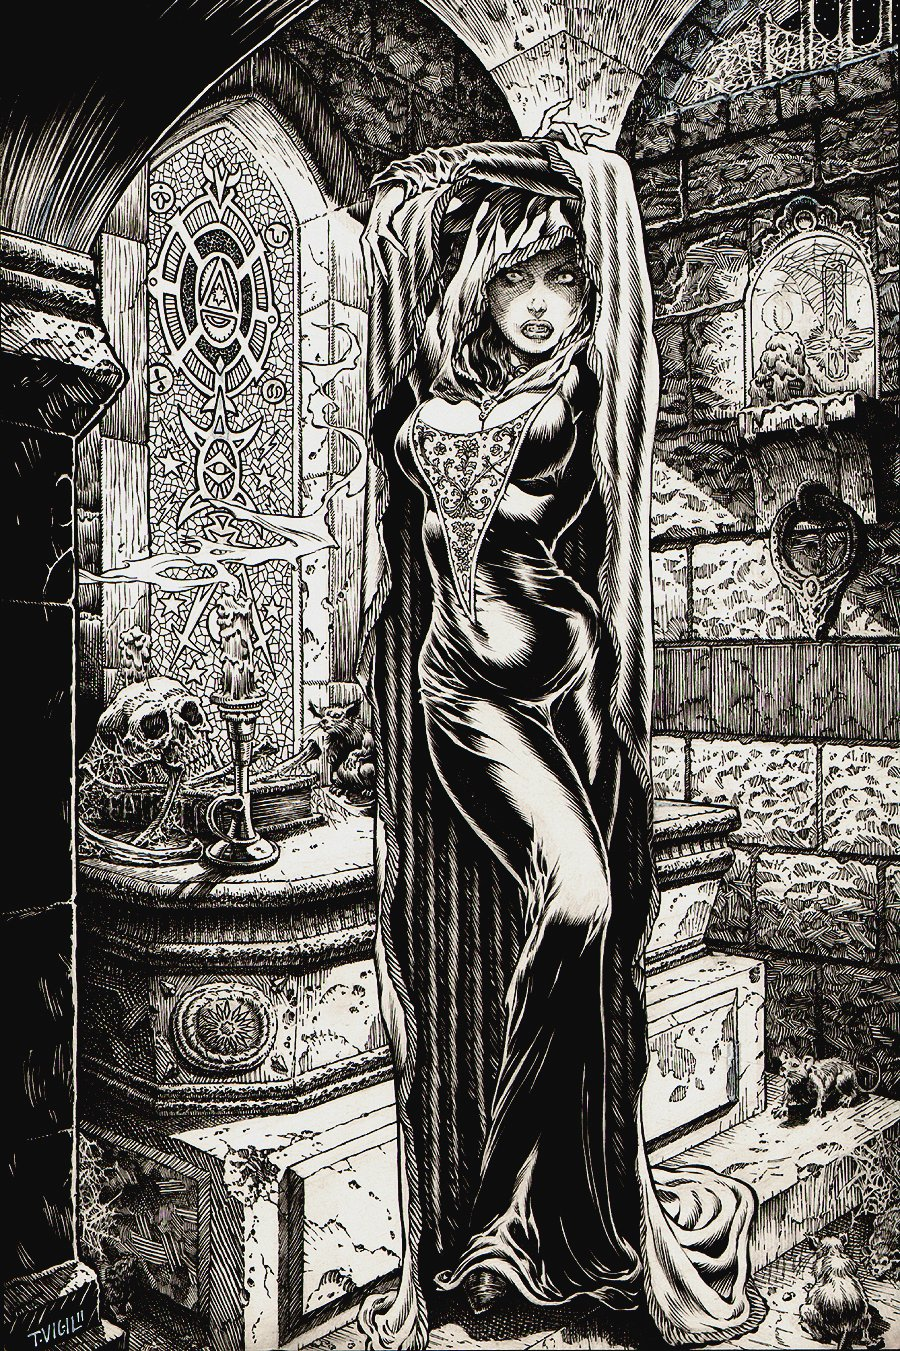 'The Crypt' Stunning Pinup